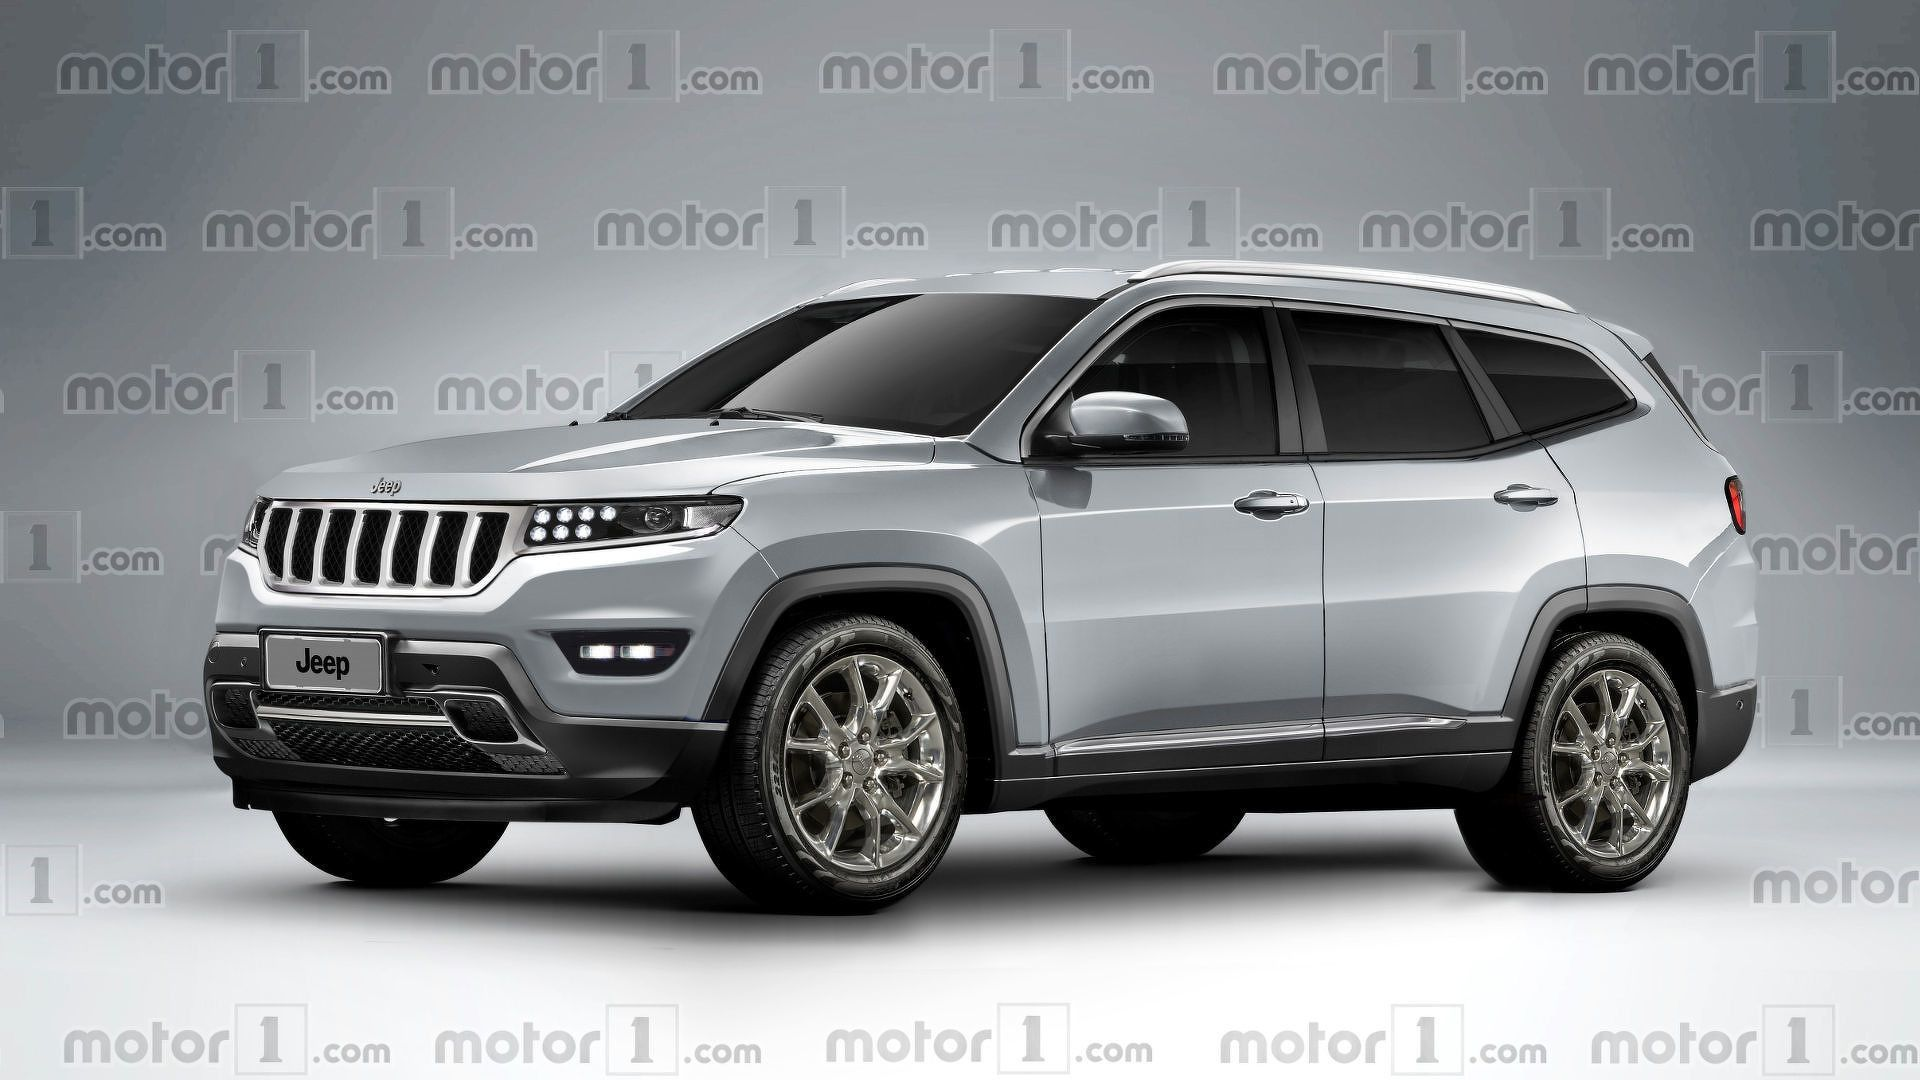 2020 Jeep Grand Cherokee Trackhawk Images Jeep Grand Cherokee Jeep Suv Jeep Grand